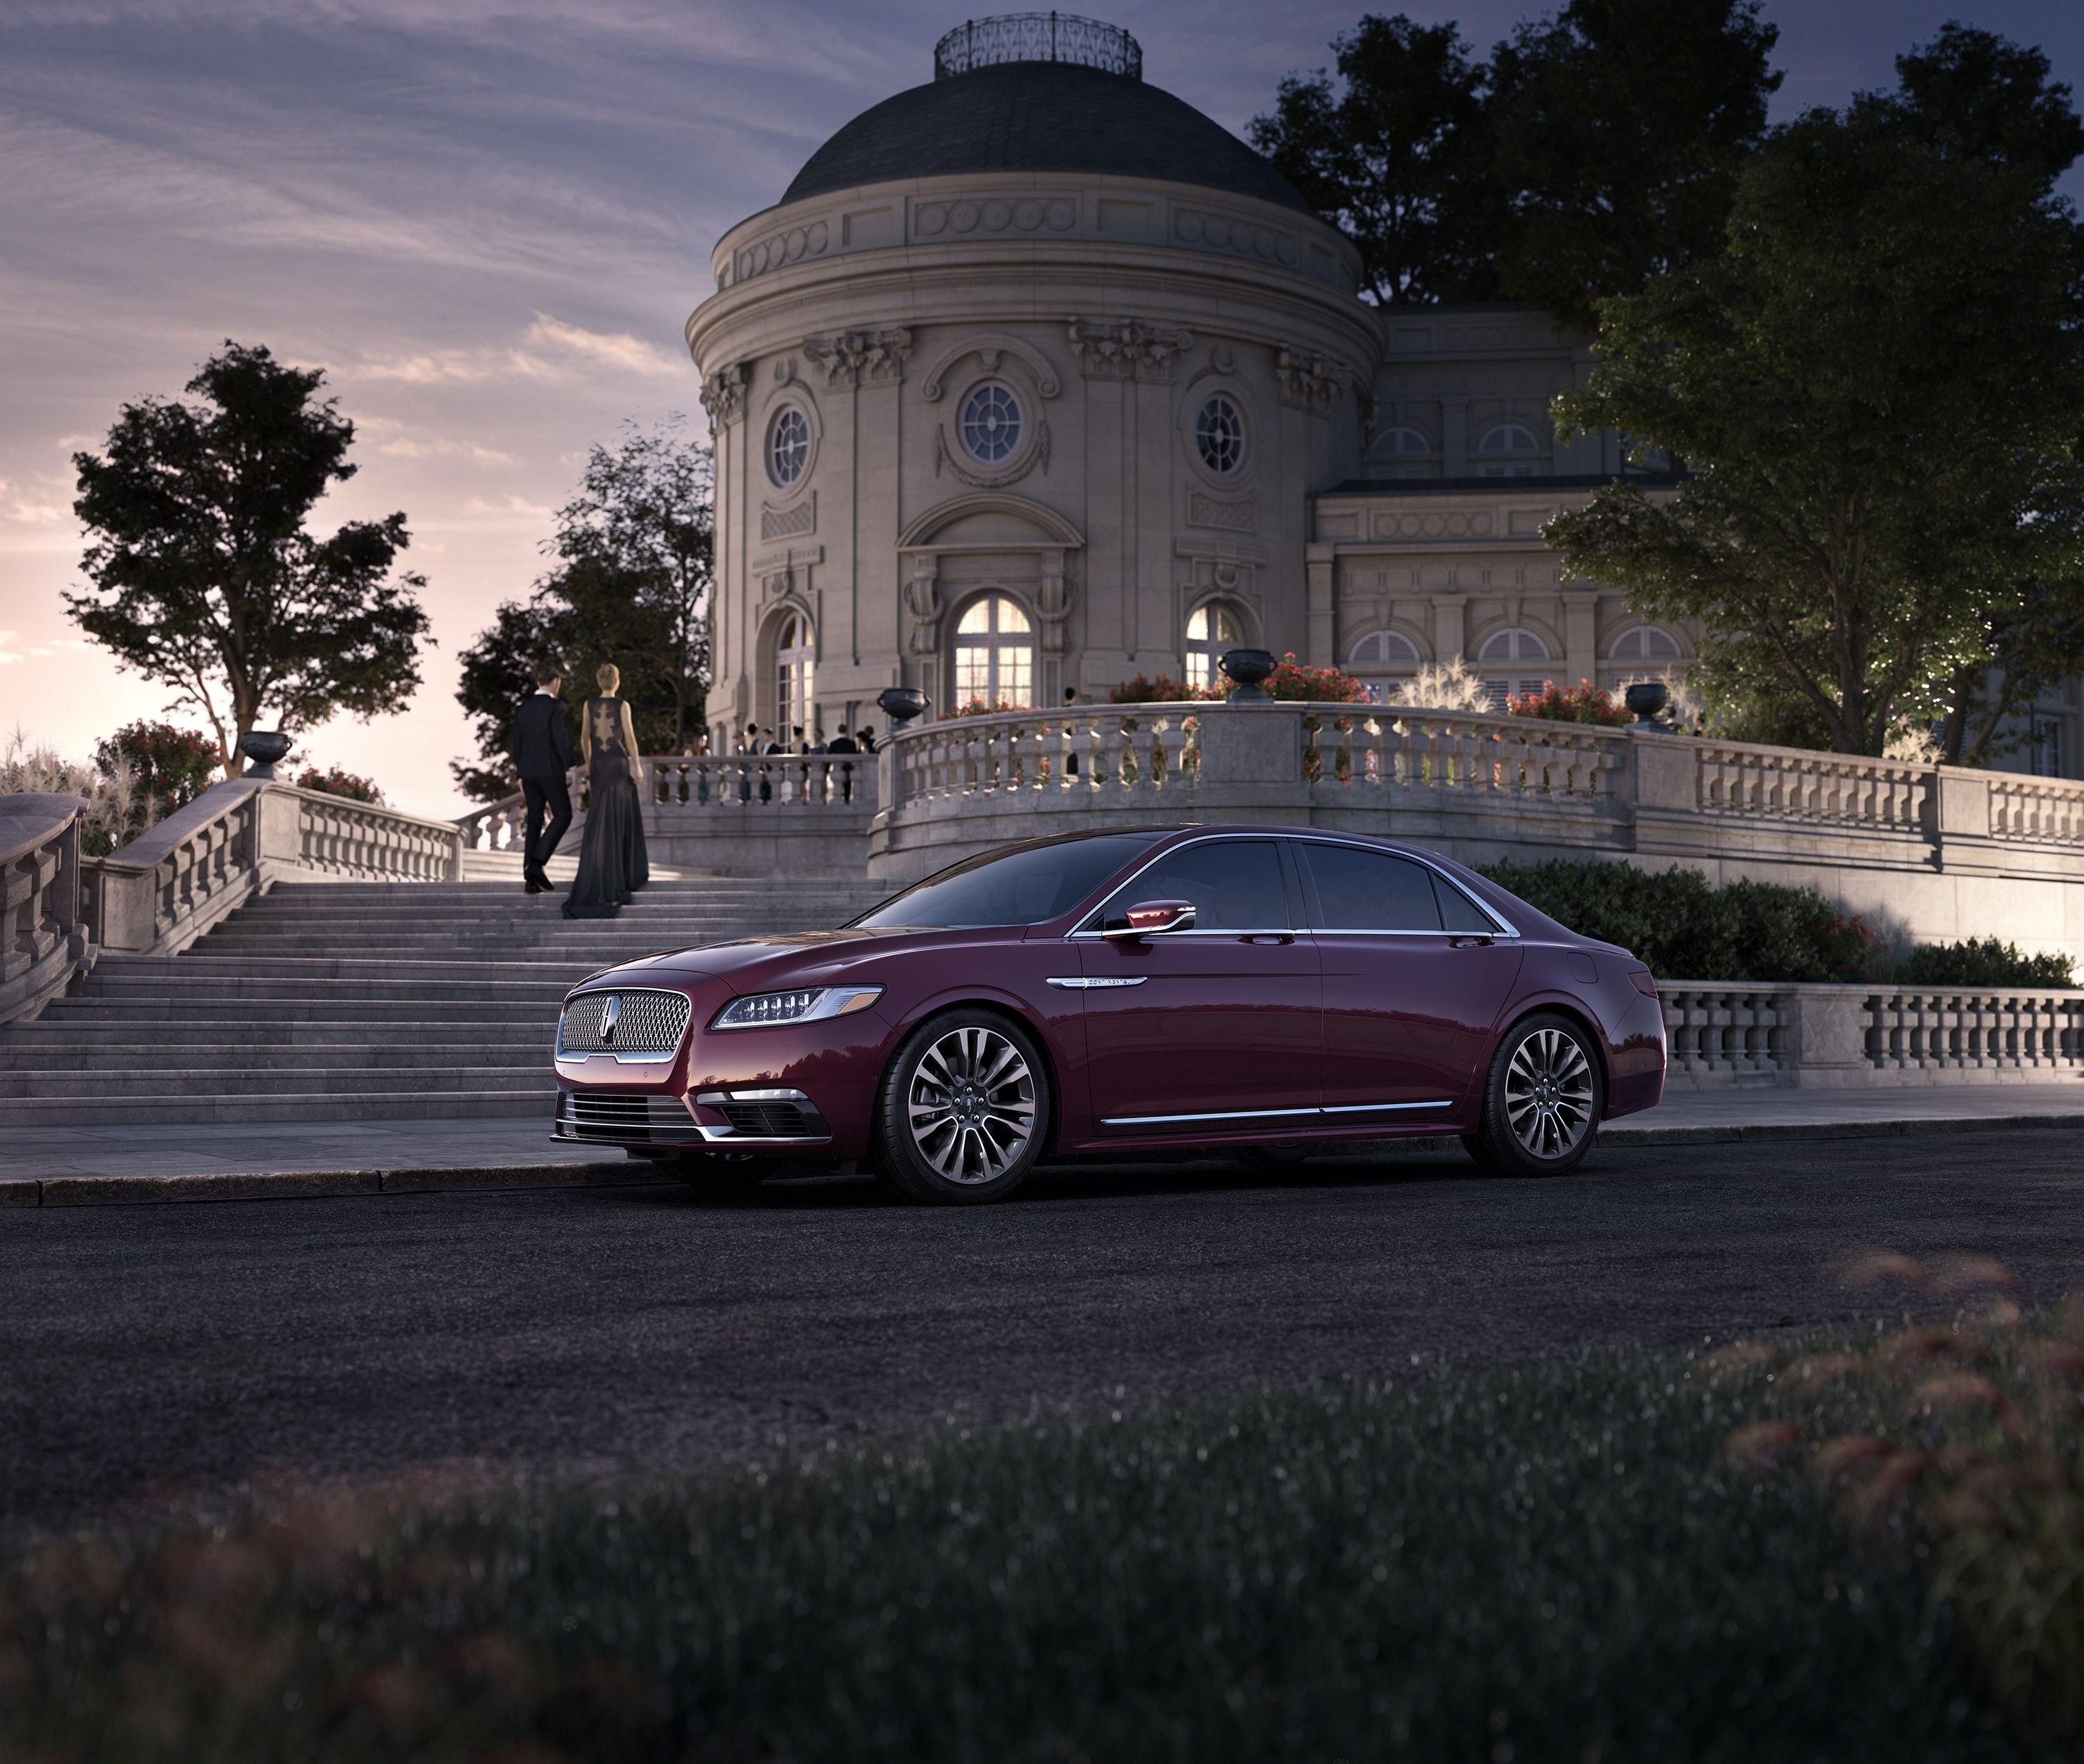 There's a difference between arriving and making an entrance. This is the 2017 Continental. #HowContinental